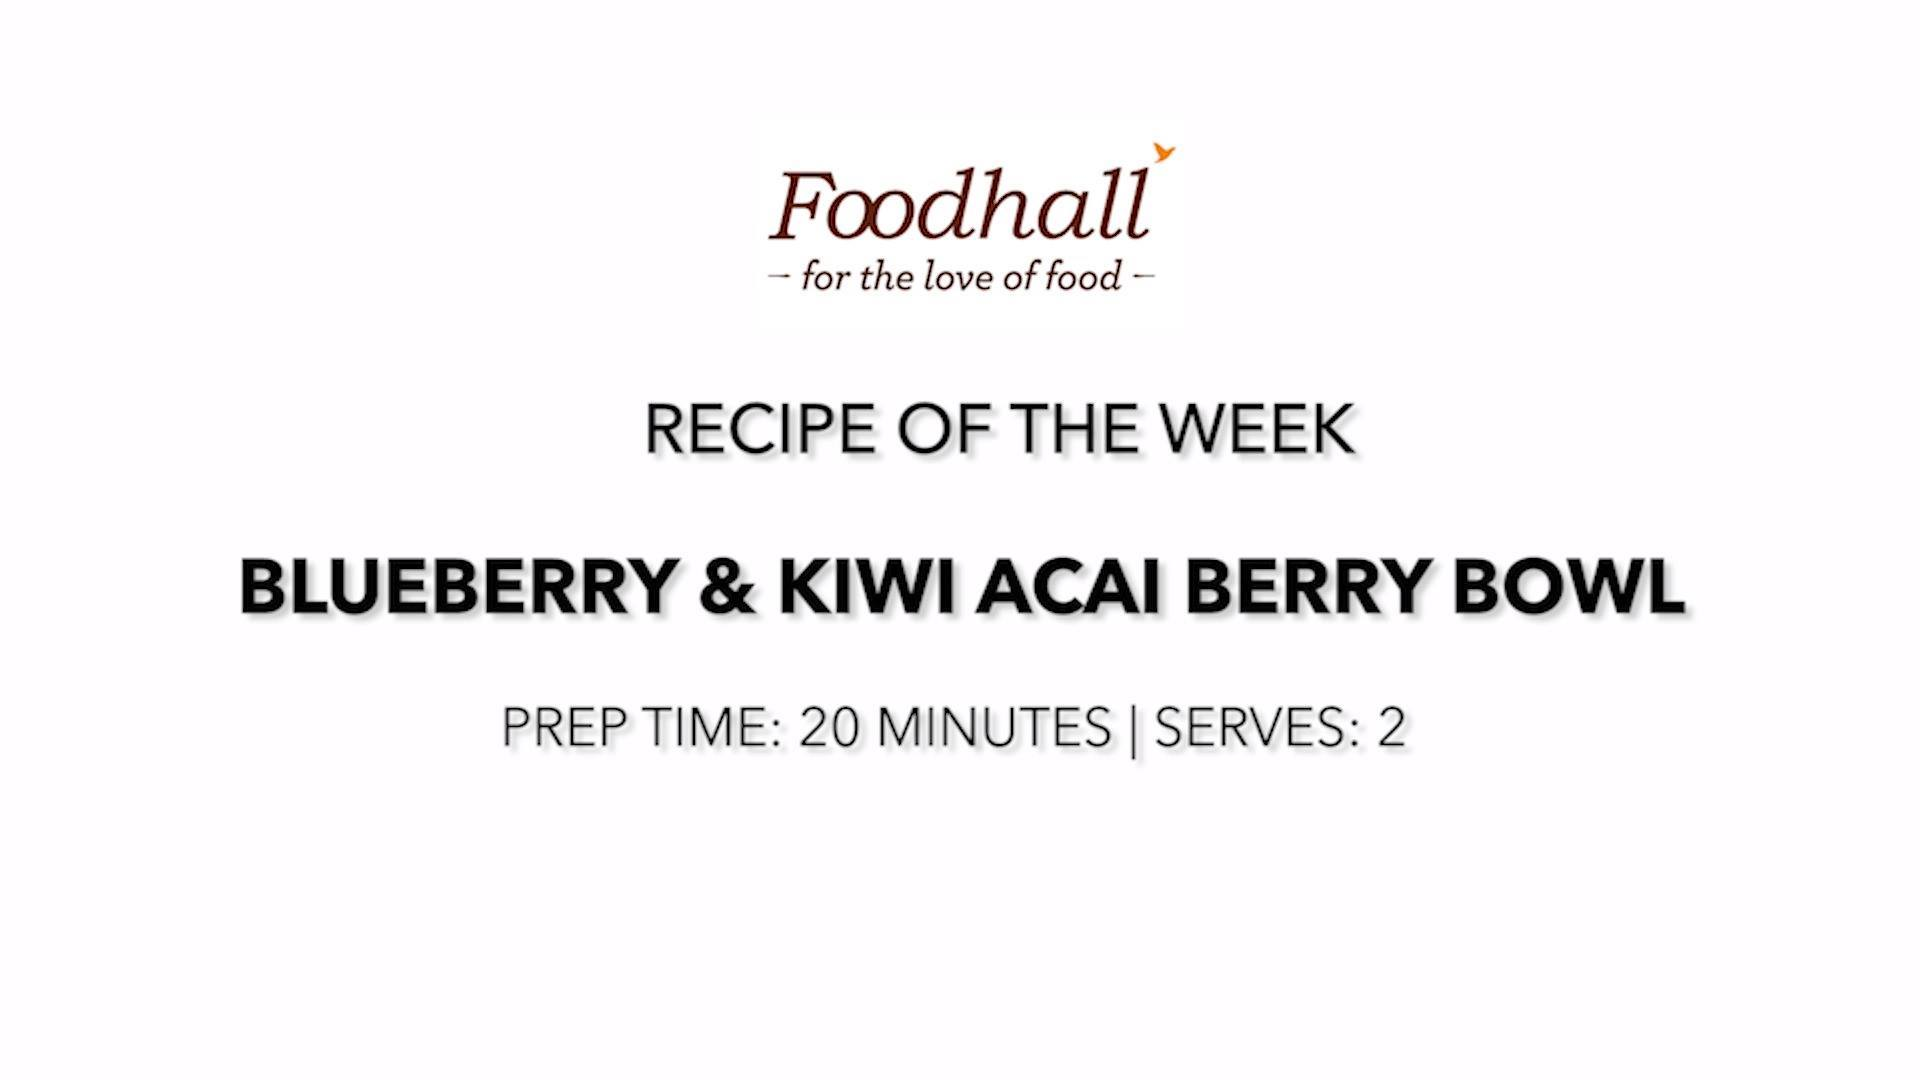 #RecipeoftheWeek: Blueberry & Kiwi Acai Berry Bowl!  Up your breakfast game with this luscious smoothie bowl, blitzed with the antioxidants, fiber and essential nutrients of the Brazilian superfood, #acaiberry! Its thick & creamy texture is perfect for scooping up, bringing a taste of the tropics to your table!  #ForTheLoveofFood #AcaiBowl #FoodhallIndia #BreakfastInspiration #RecipeShare #BreakfastRecipe #SmoothieBowl #AcaiBerry #SuperfoodSmoothie